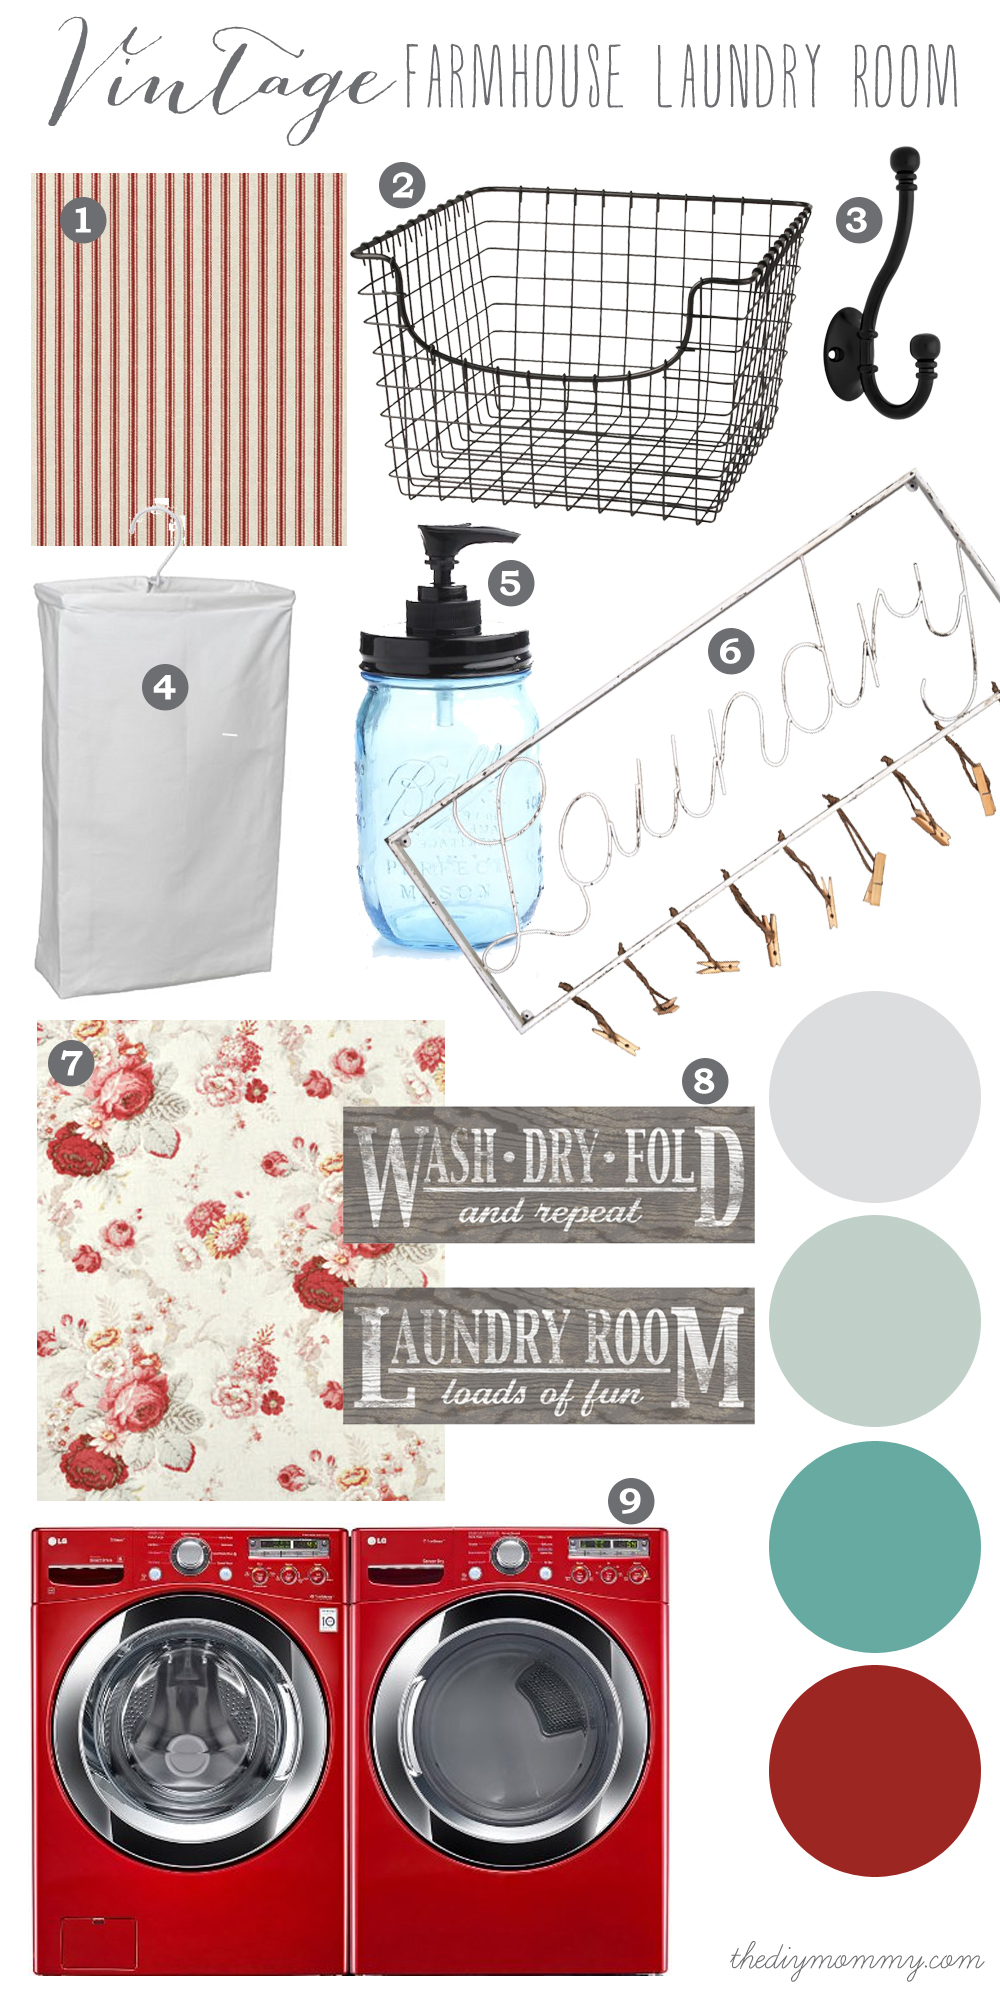 A Vintage Farmhouse Laundry Room design idea in aqua, mint and cherry red.